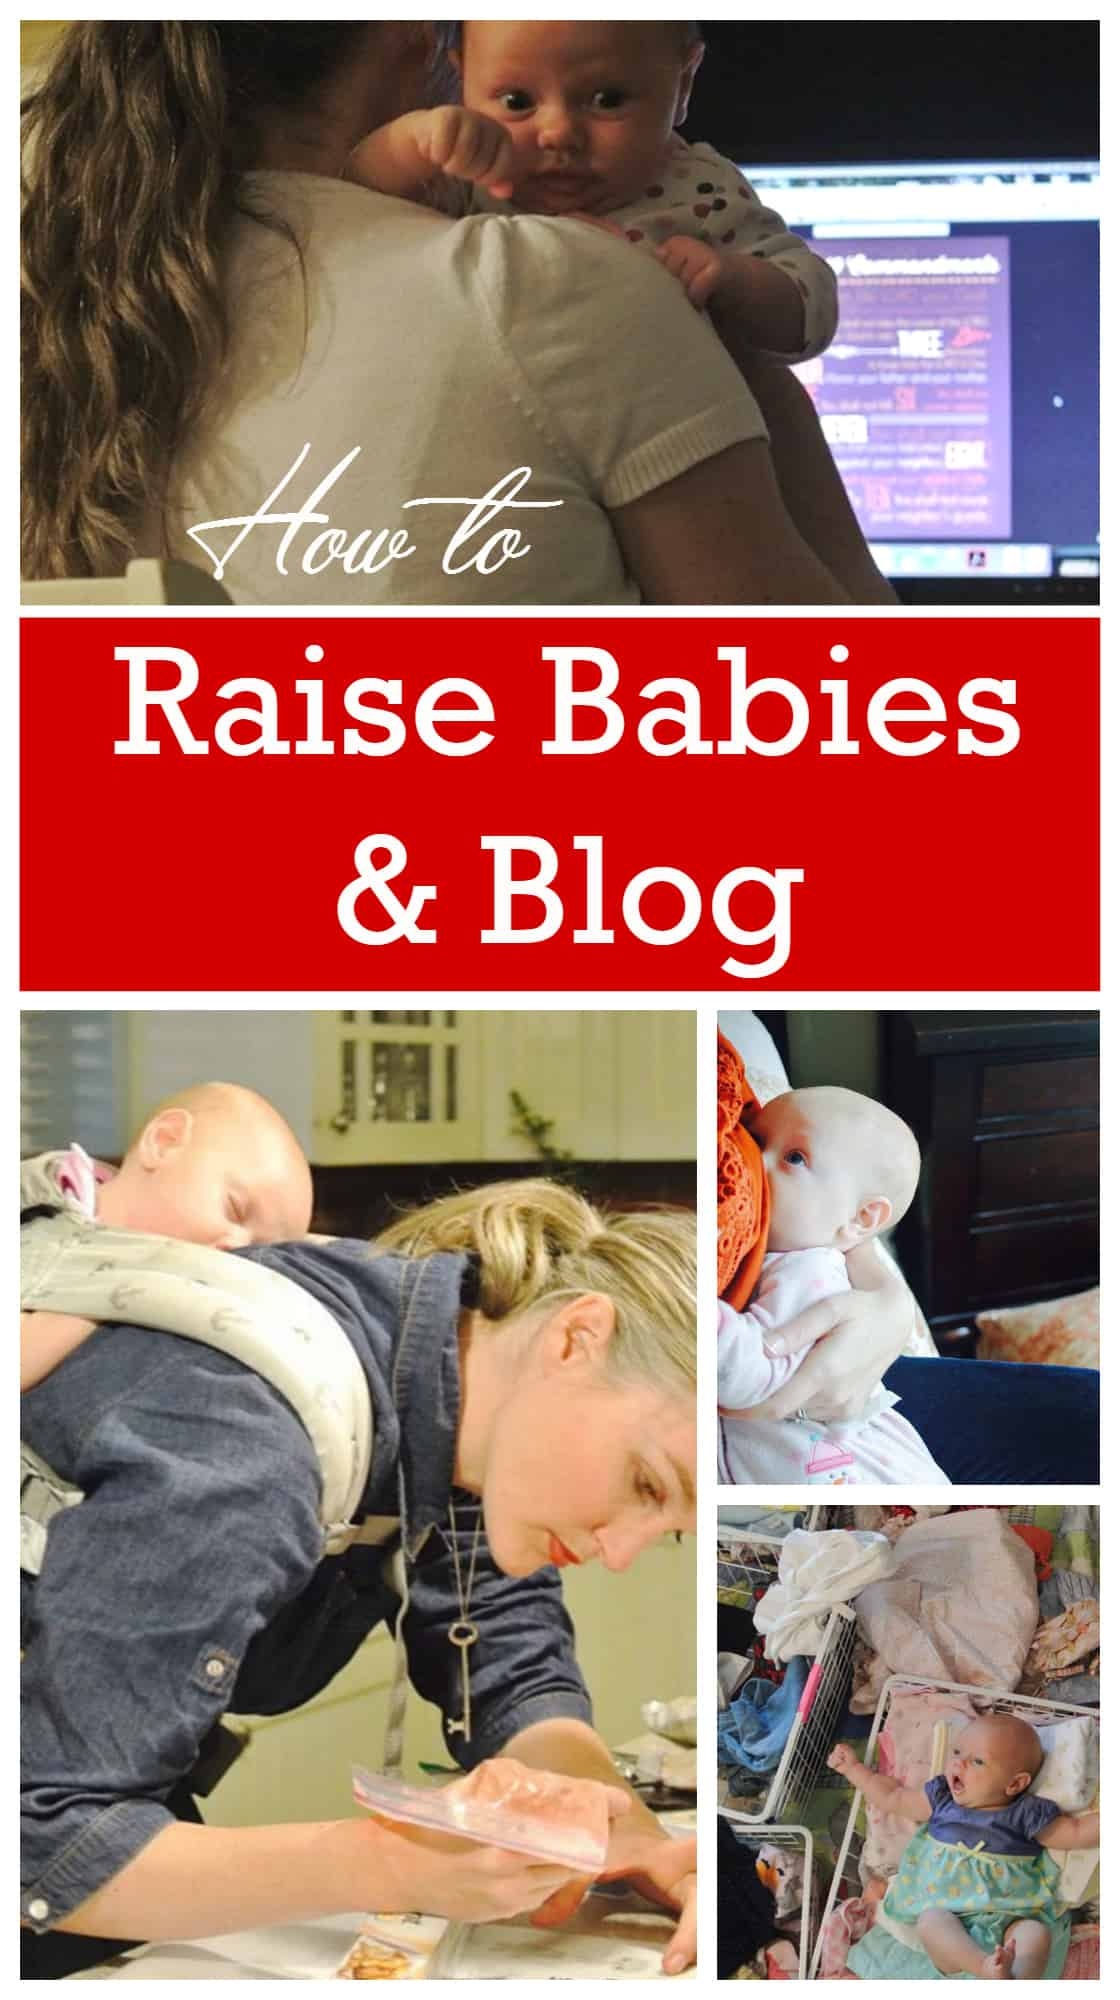 How to Raise Babies and Blog www.startamomblog.com